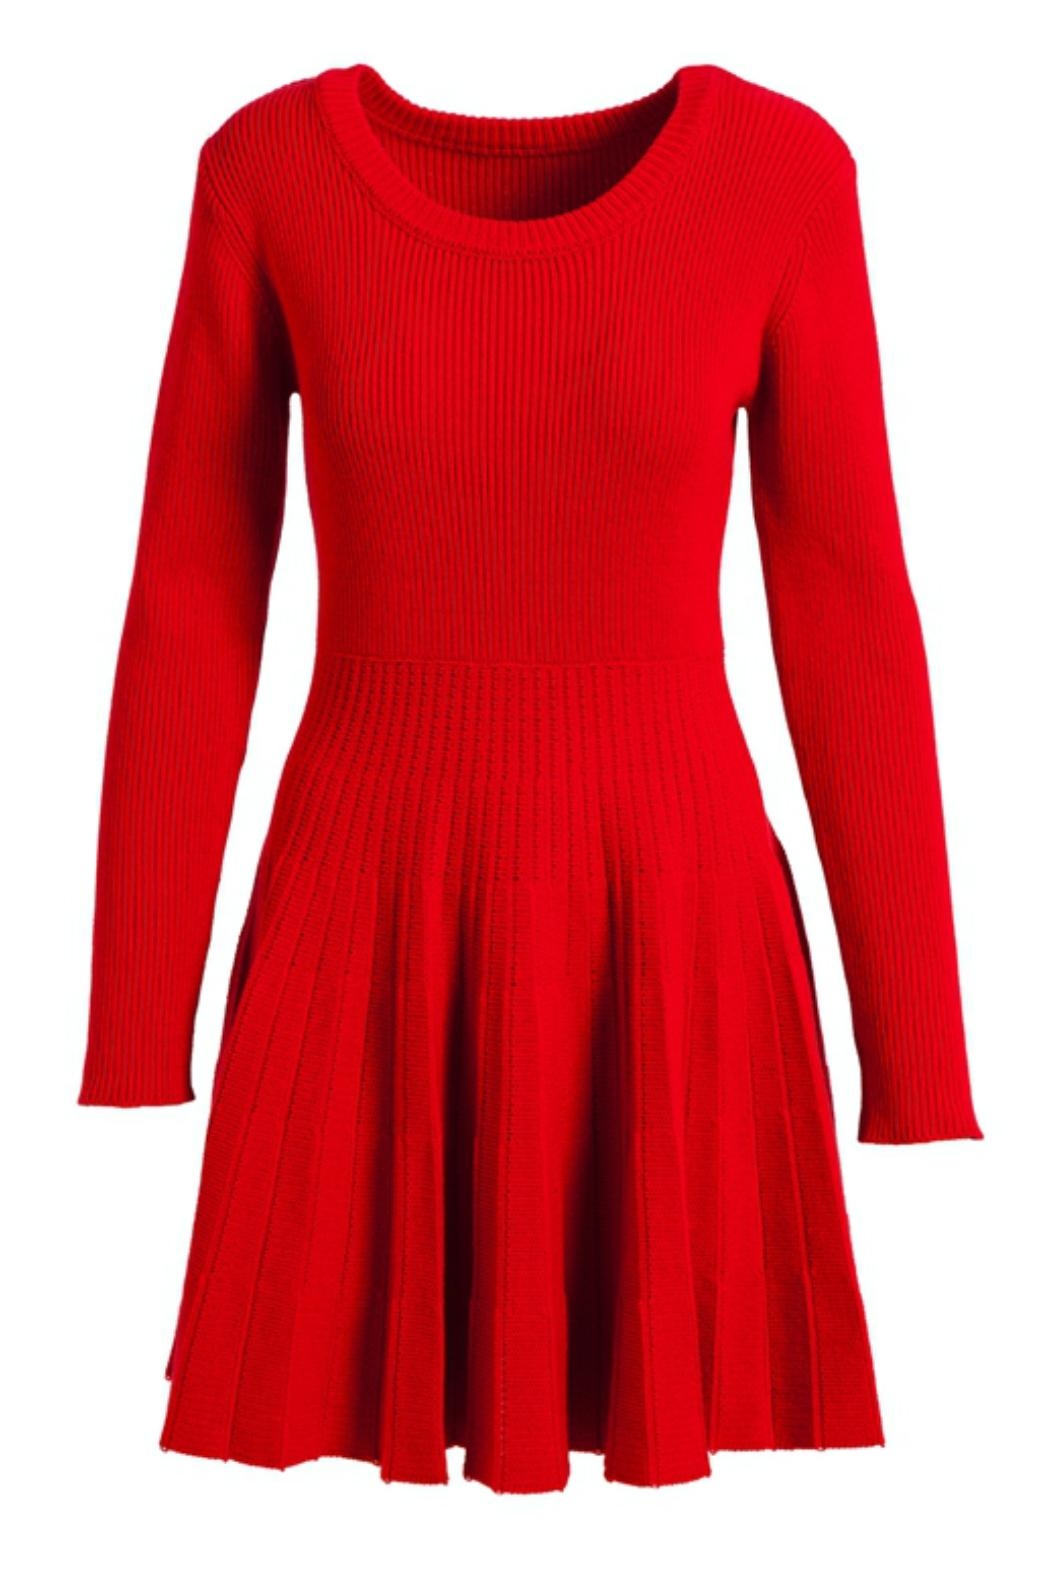 Evergreen Enterprises Fit-And-Flare Sweater Dress - Main Image